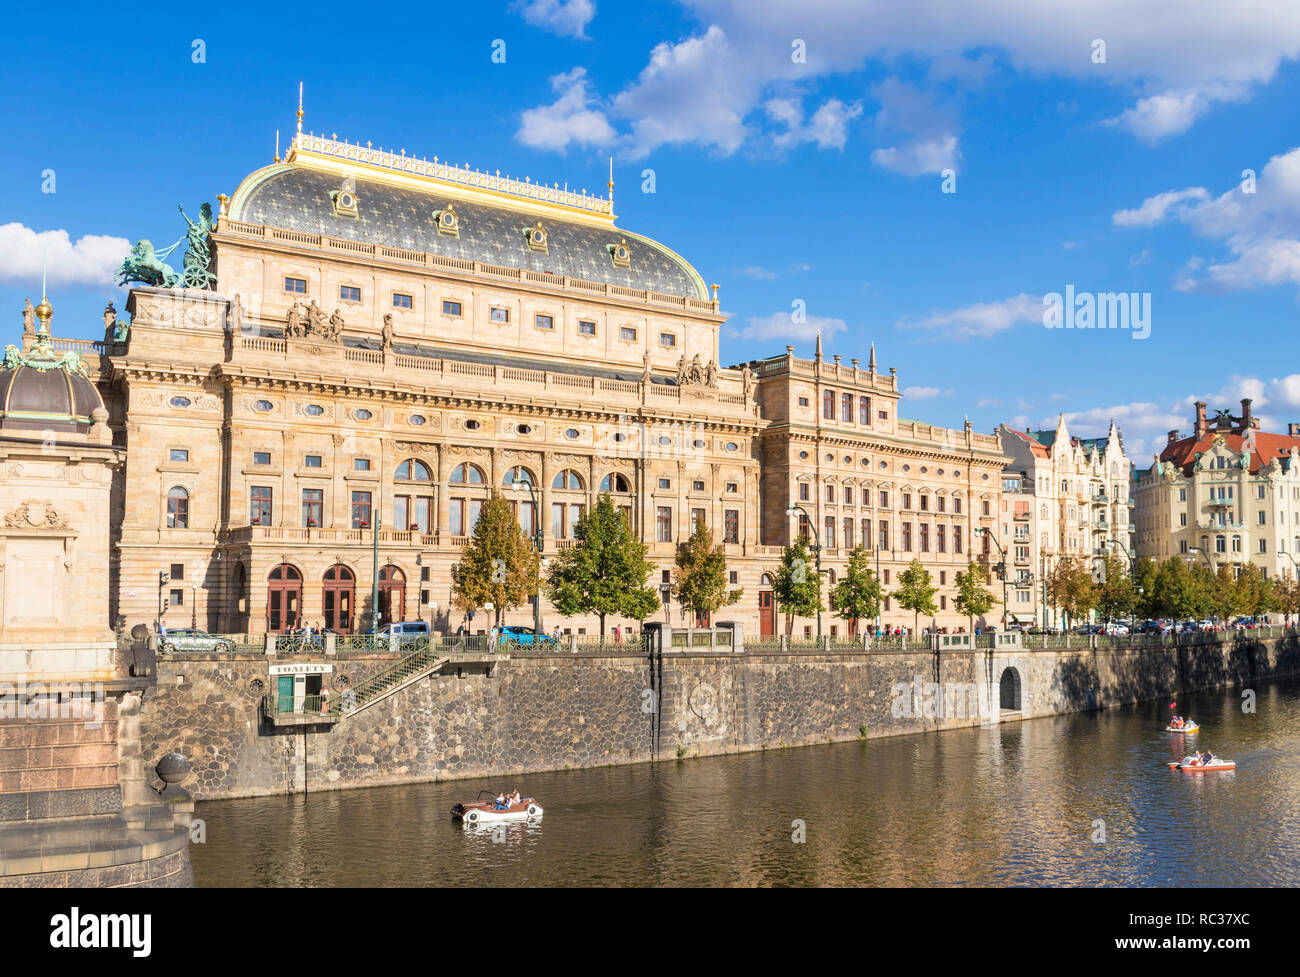 Prague National Theatre Národní divadlo on the banks of the river Vltava with people on the river in boats Prague Czech Republic EU Europe - Stock Image